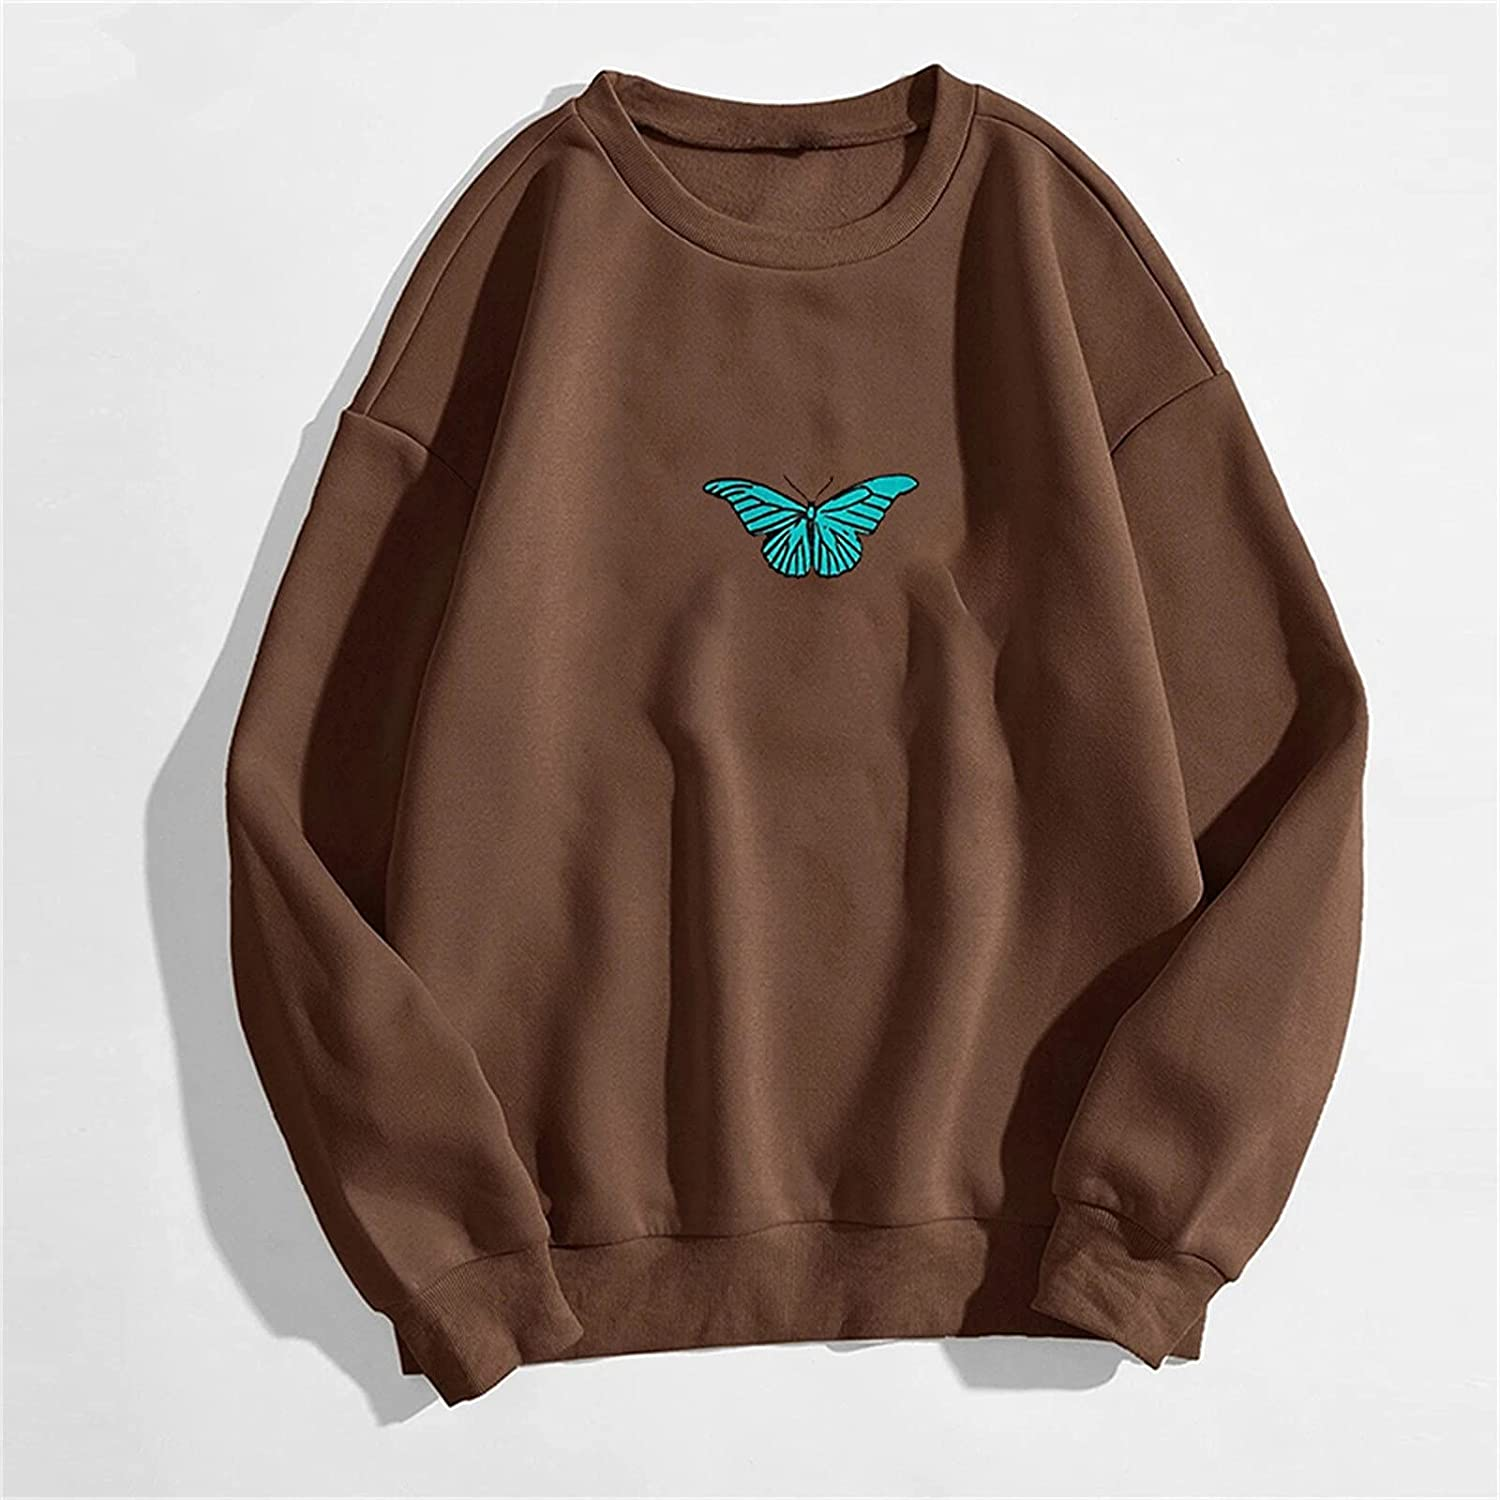 Crewneck Fall Sweatshirts Women Vintage Loose Fit Butterfly Graphic Long Sleeve Batwing Pullover Juniors Blouse Tops